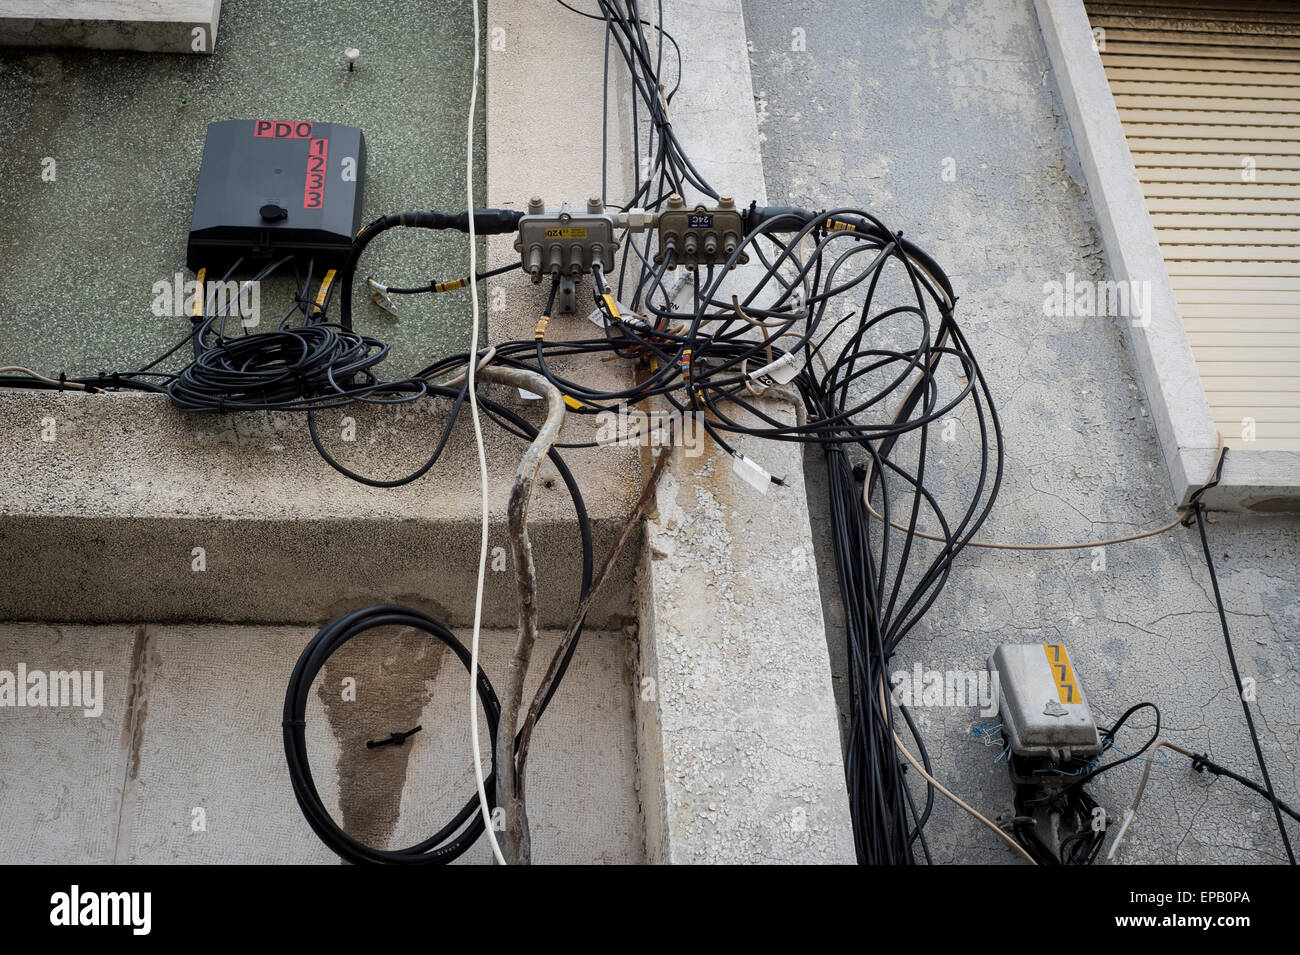 wires and cables for electricity and telephones on the wall ... on telephone equipment, cable wiring, telephone handset holder, telephone plugs, telephone transmitter, telephone components, telephone computer, telephone tools, telephone switch, telephone number, telephone systems, data wiring, telephone design, telephone diagram, telephone blue, telephone cables, computer network wiring, telephone connectors, telephone relay, telephone wires, telephone schematic, computer wiring, telephone service, low voltage wiring, electrical wiring, telephone jacks, telephone panel board, telephone repair, telephone communication system, telephone data lines, telephone line work, telephone installation, telephone operators,